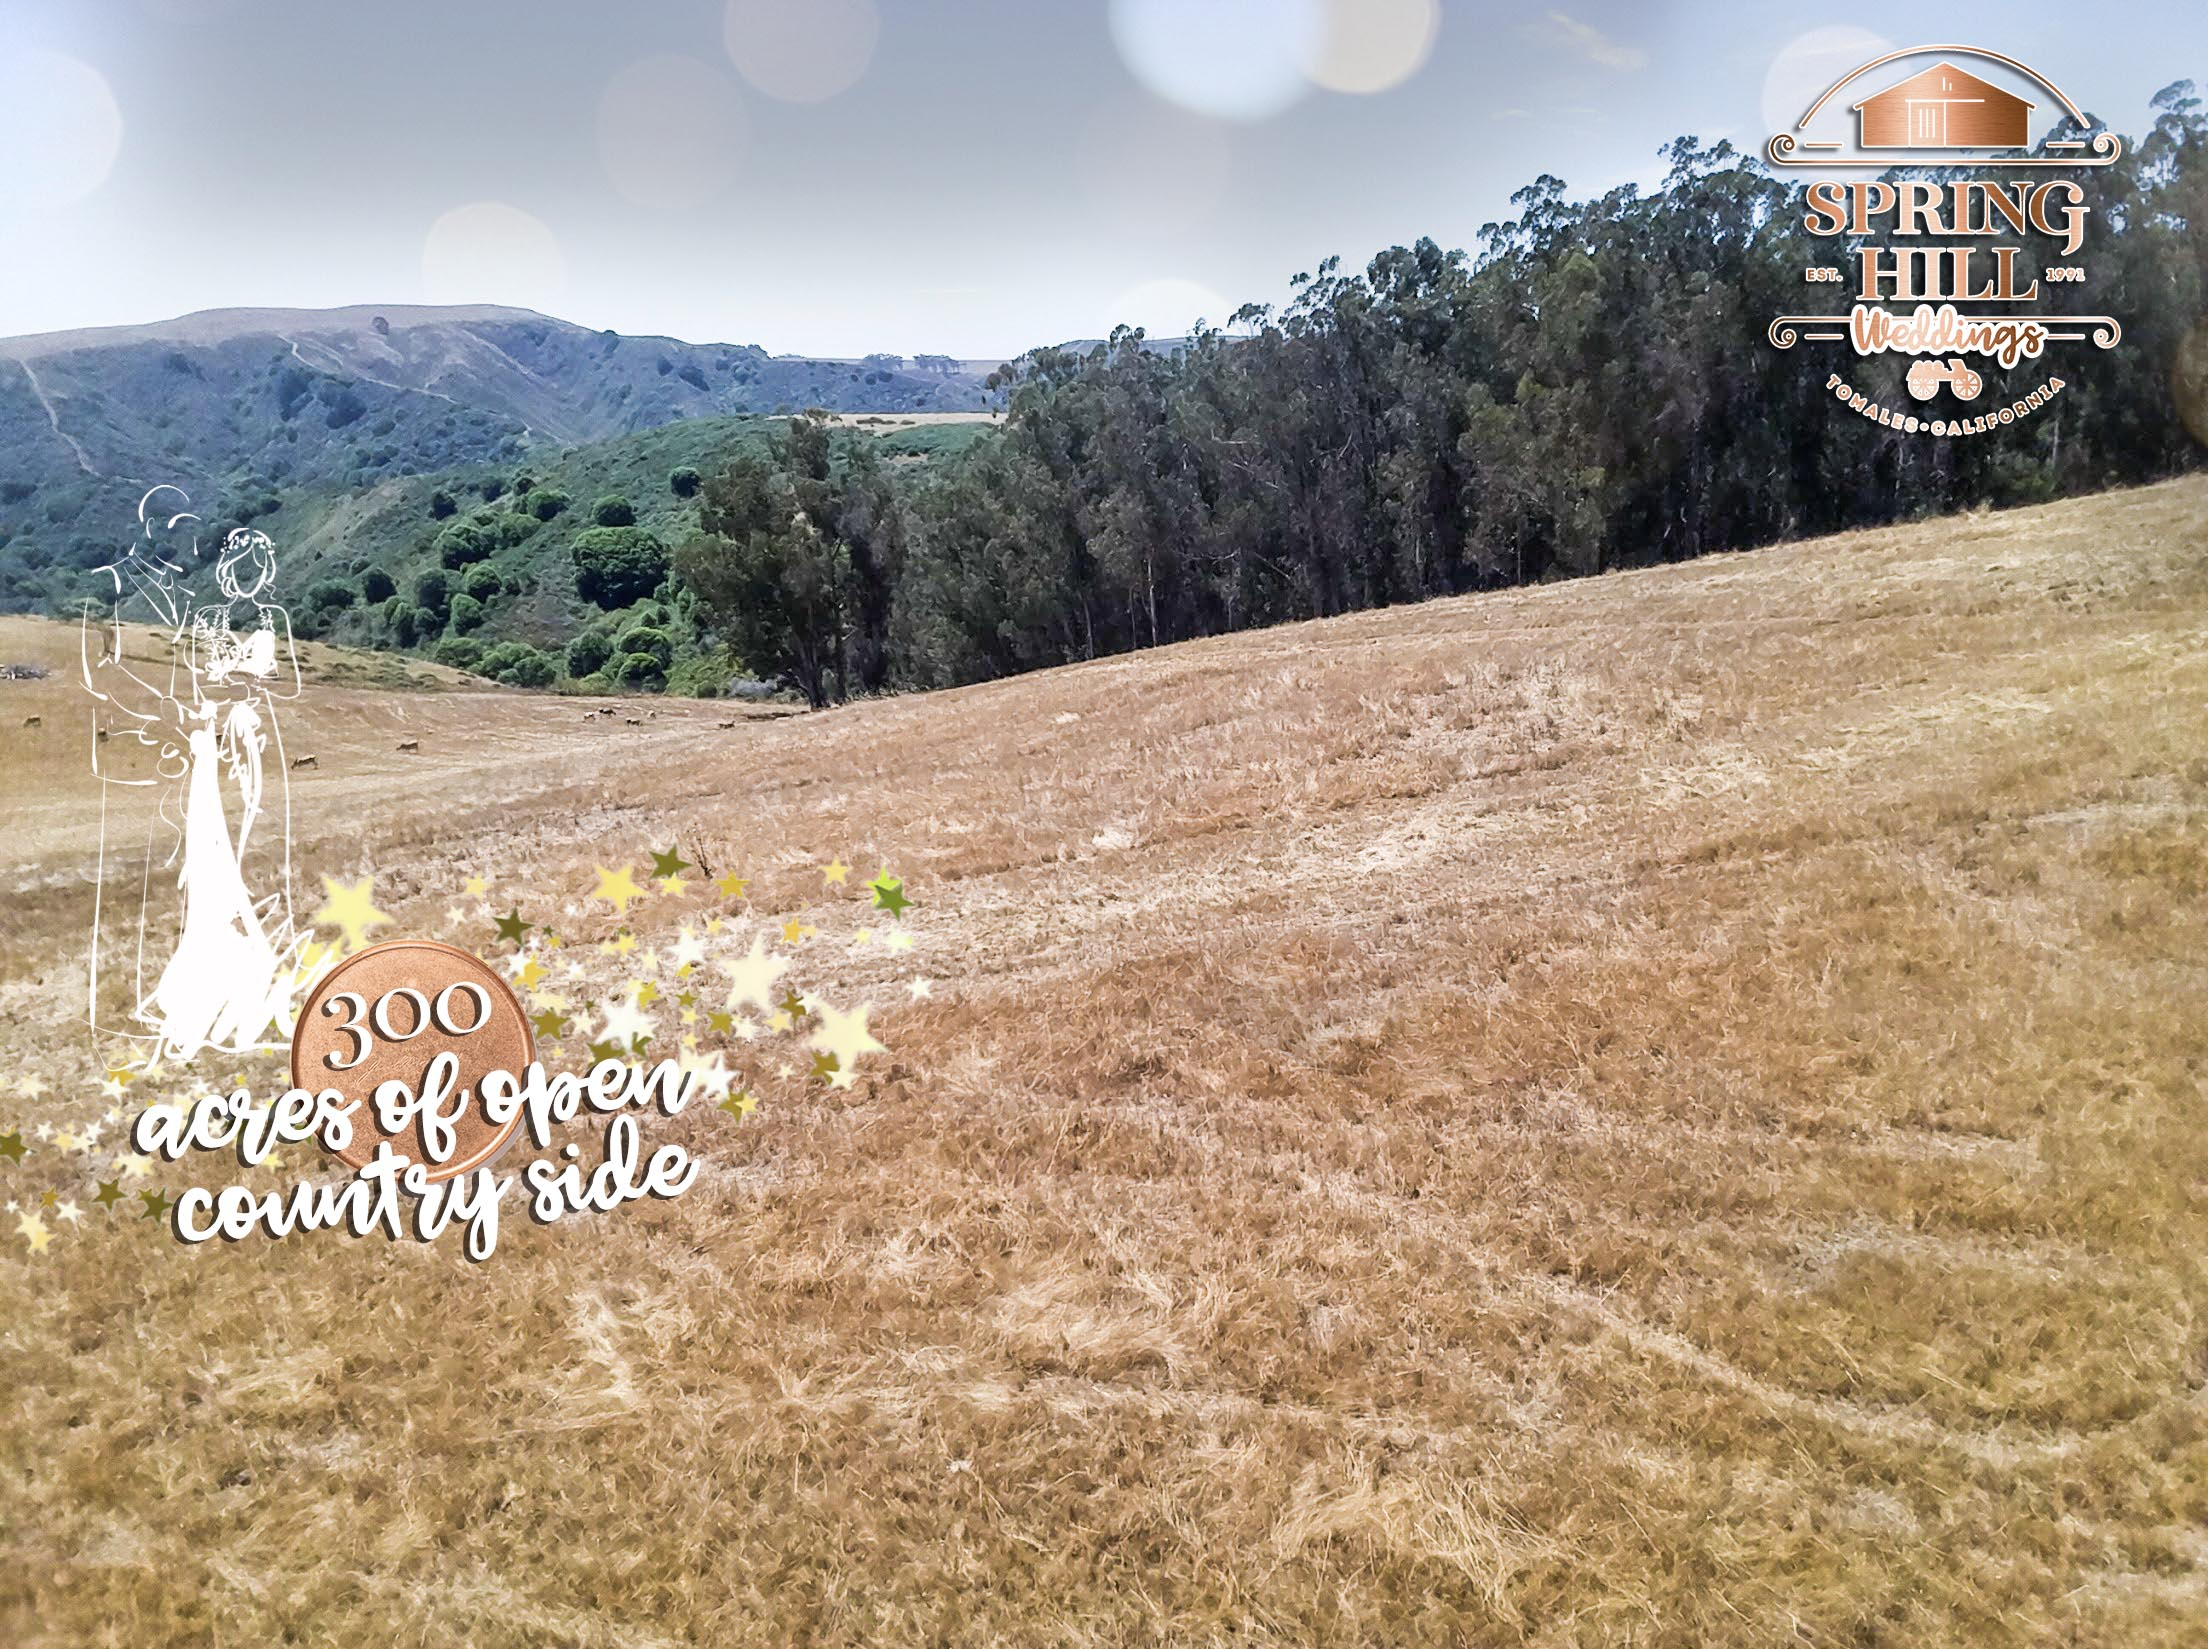 barnyard_Propertie_rental_house_wedding_country_farm_petaluma_bodega_Bay_tomales_CA_94975_94953_San_fran_wedding_countryside_propertie_party_venue_rental_space_event copy.jpg